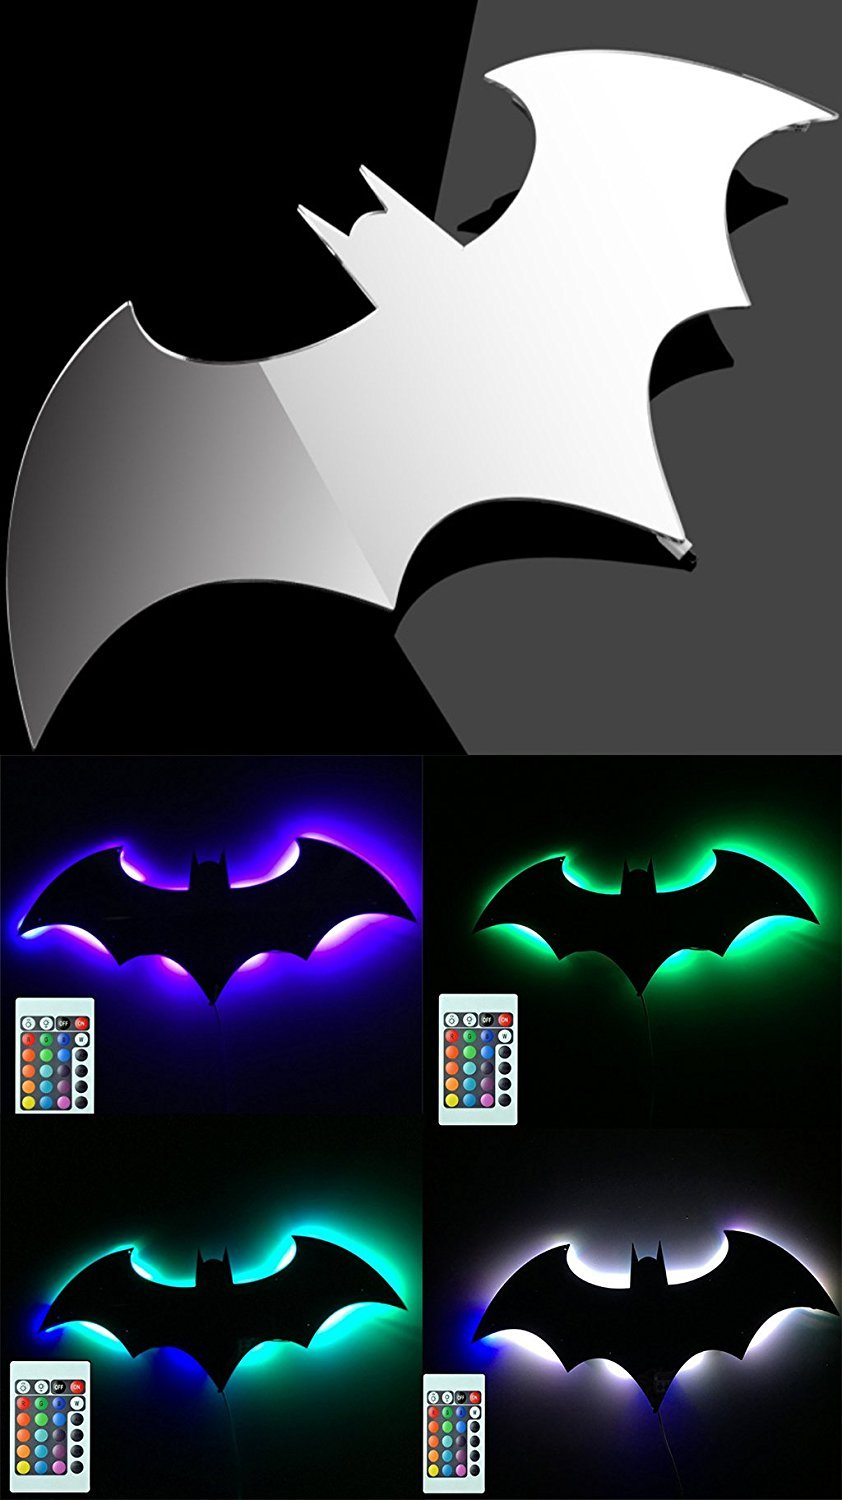 Bat LED Wall Light,Colorful Mirror Light,Remote Control Projection Night Light,Halloween Decorative Light,Suitable for Bedroom/KTV / Corridor/Background Wall, etc (Colorful) QI MING XING JING-Batman-7C